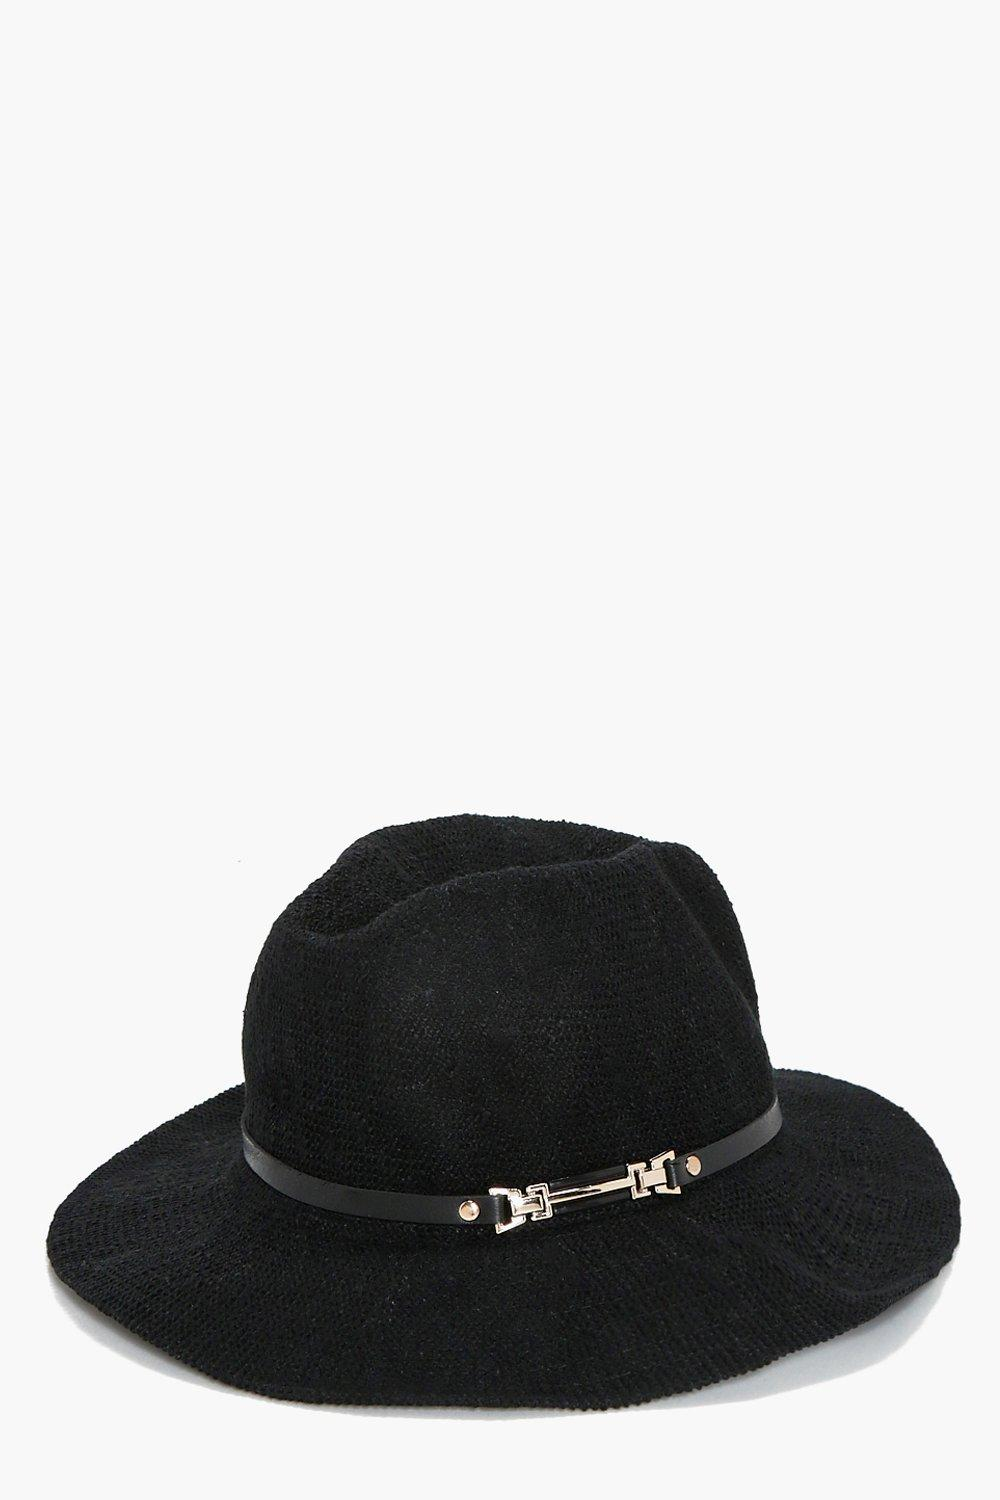 Metal Trim Fedora - black - Harriet Metal Trim Fed